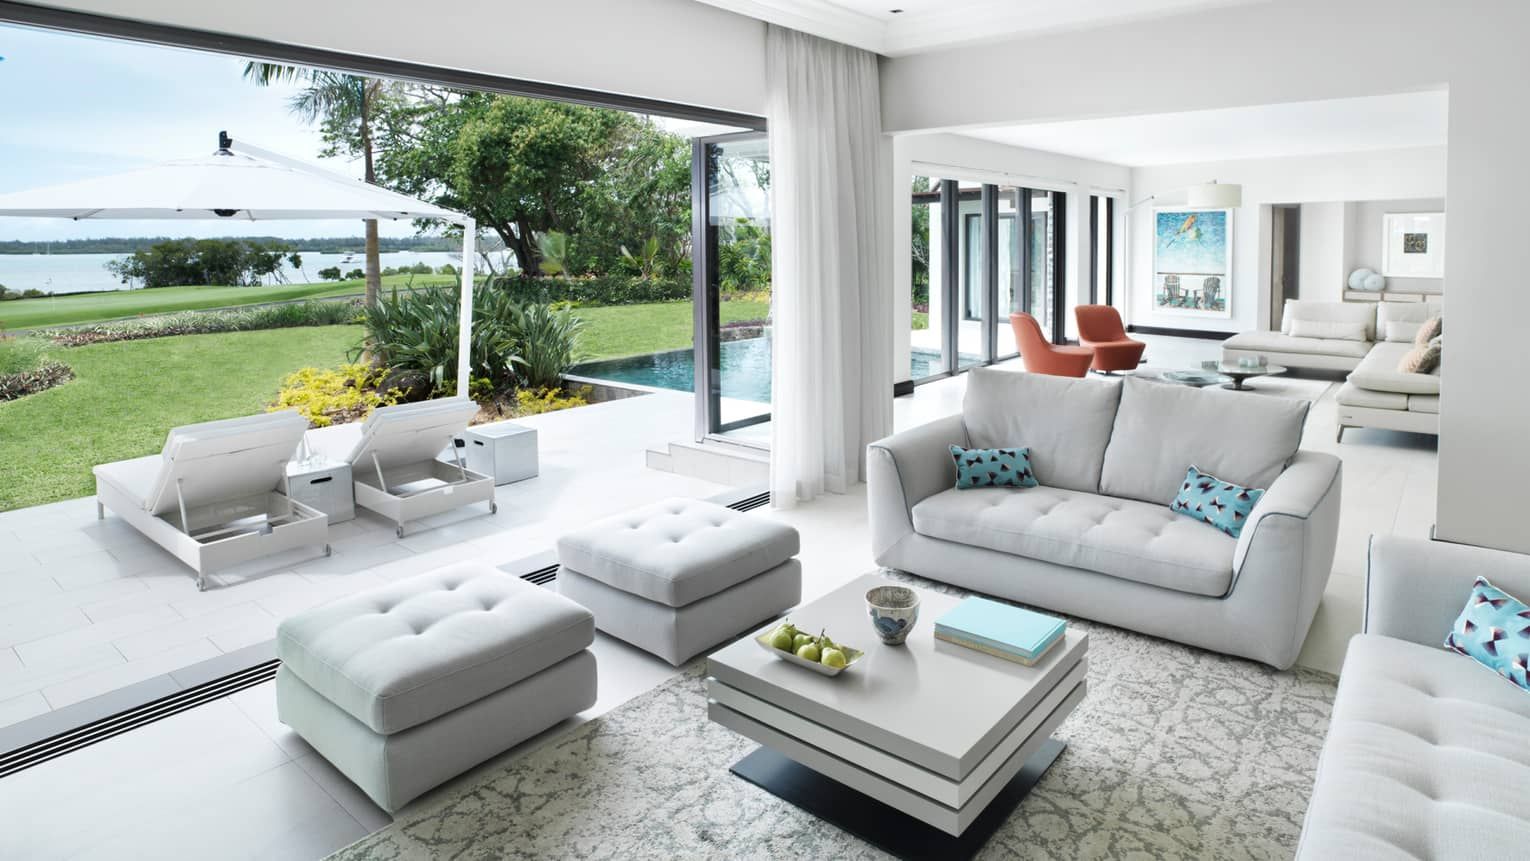 Suite with two white sofas, aqua pillows, two ottomans, square coffee table, patio and water view